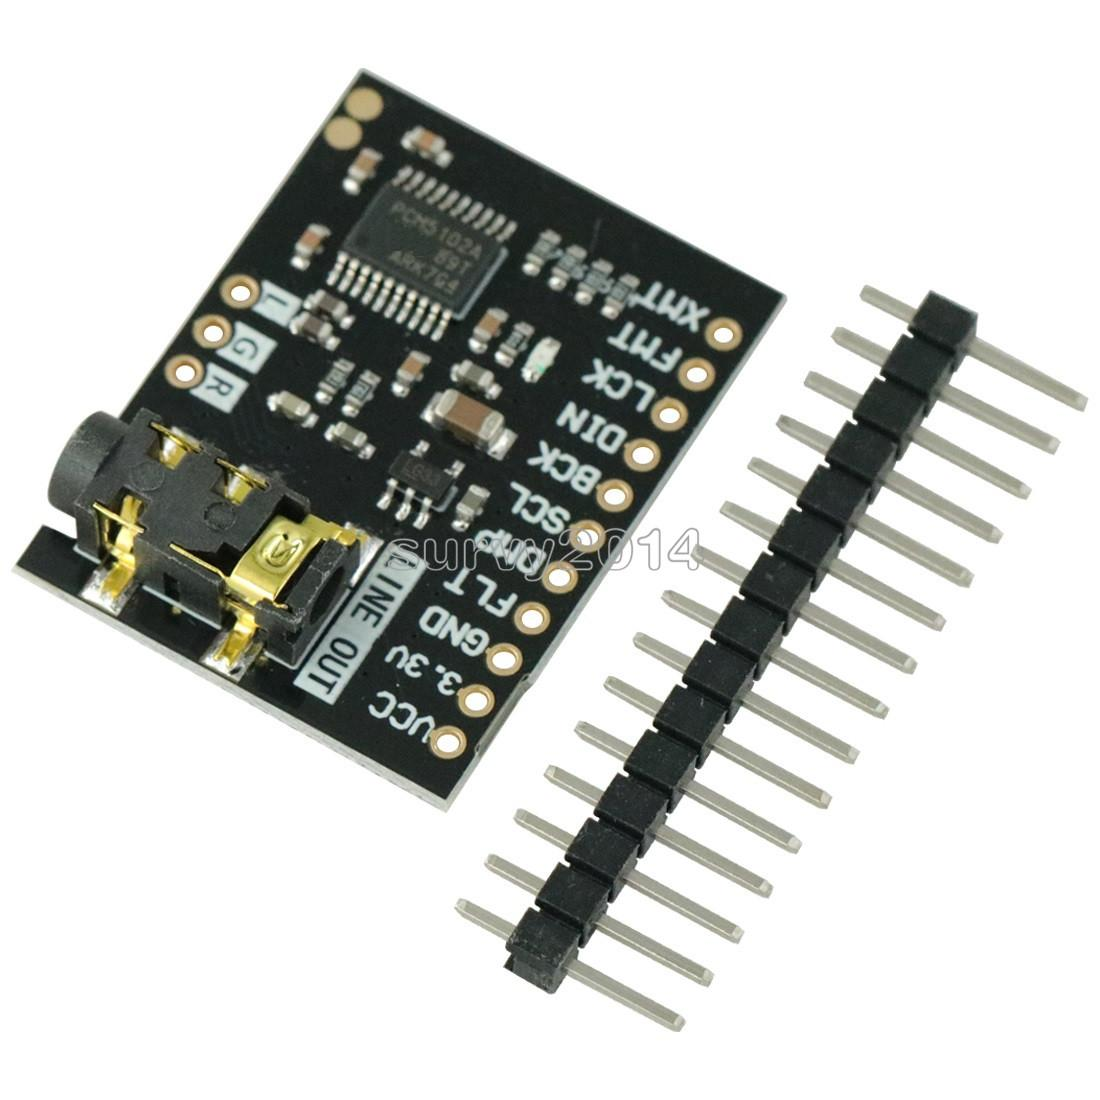 I2S PCM5102A DAC Decoder 32bit Player Module ES9023 PCM1794 For Raspberry Pi